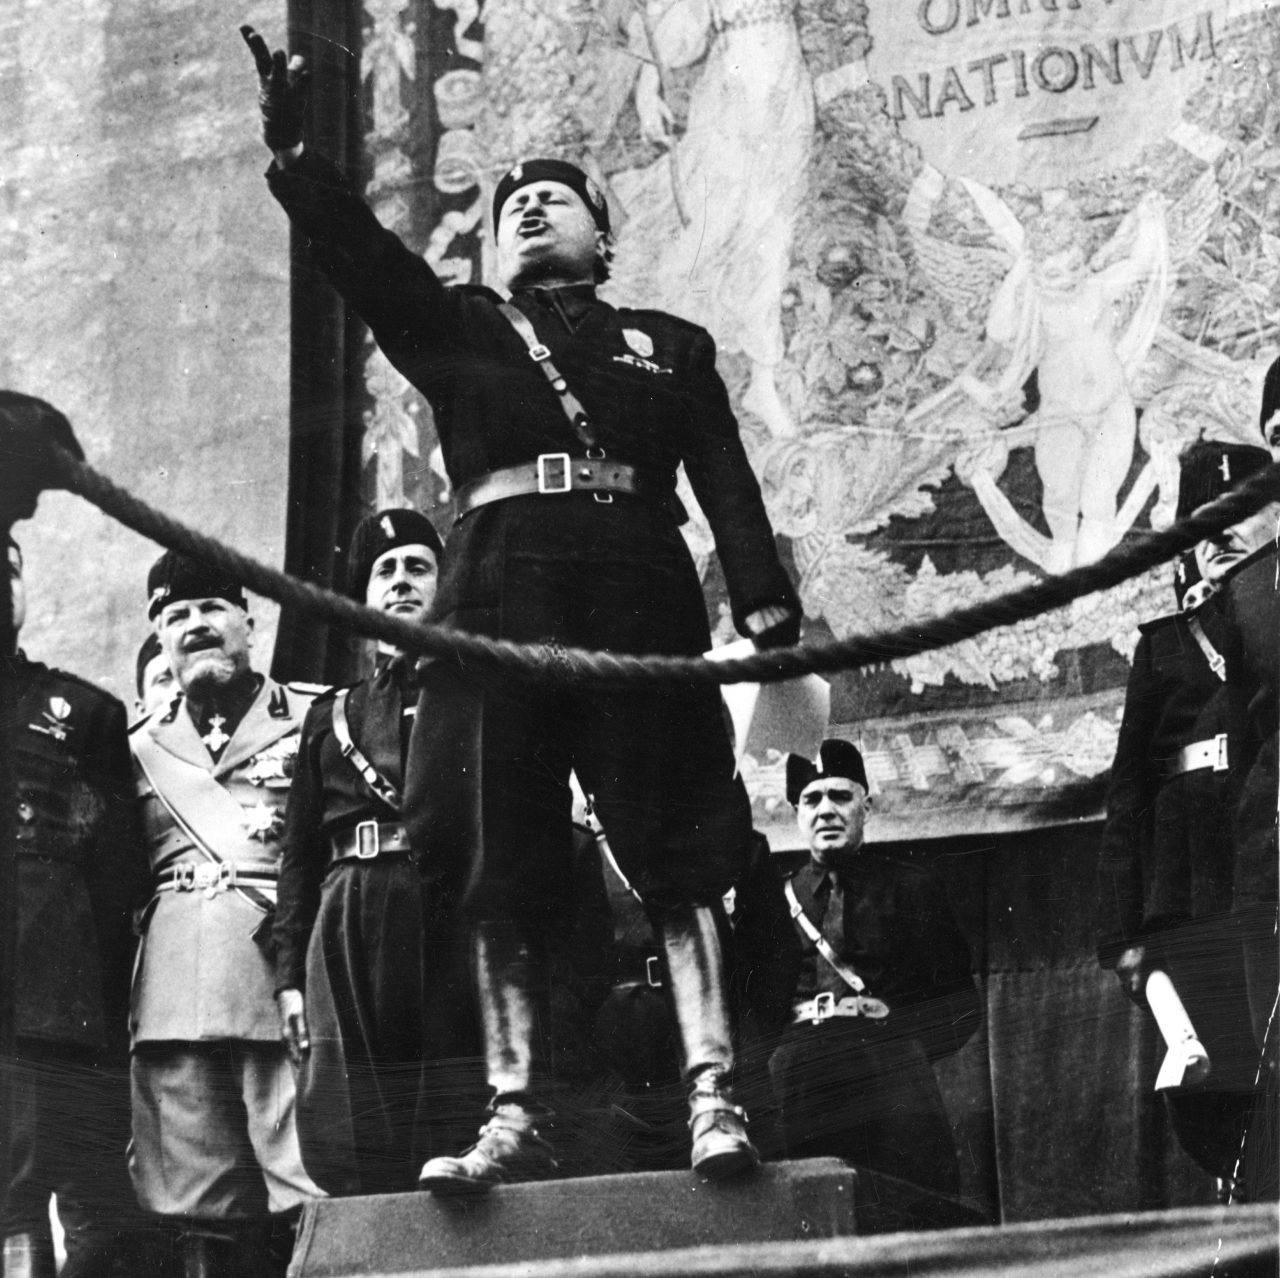 The Surprising Fans of Mussolini and his Trip to London in 1922 - Flashbak